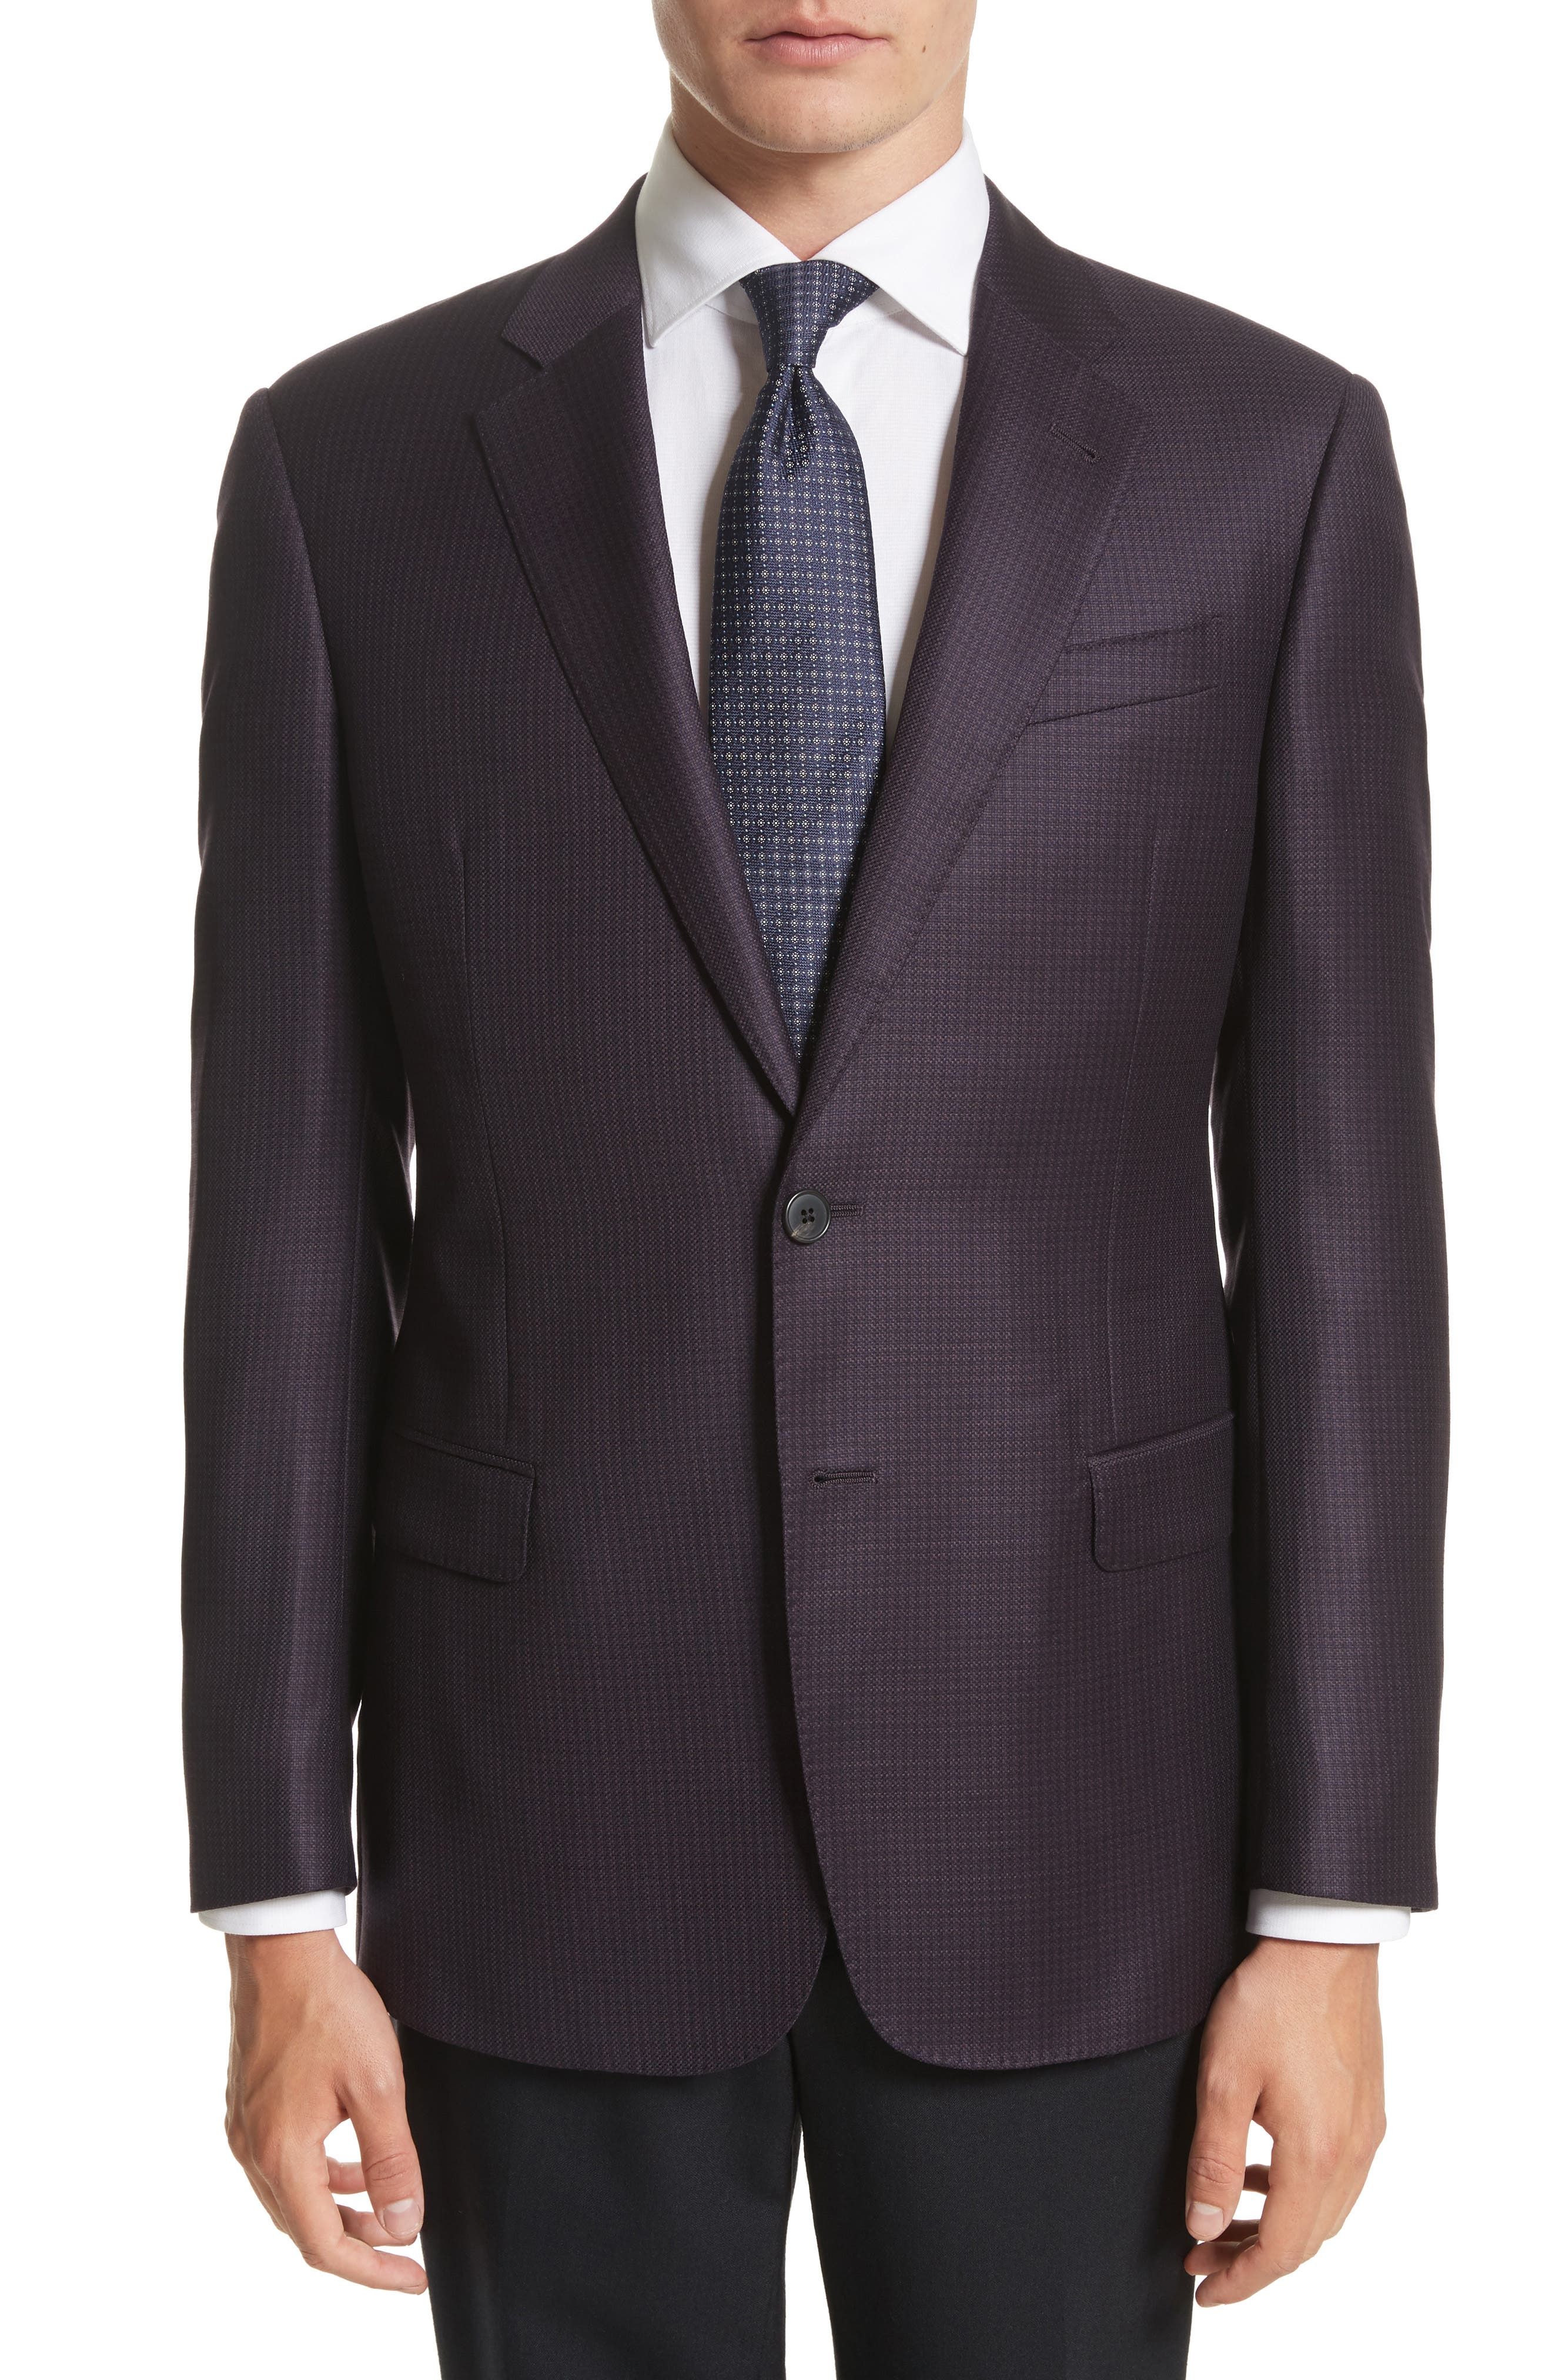 G-Line Trim Fit Houndstooth Wool Sport Coat,                             Main thumbnail 1, color,                             604